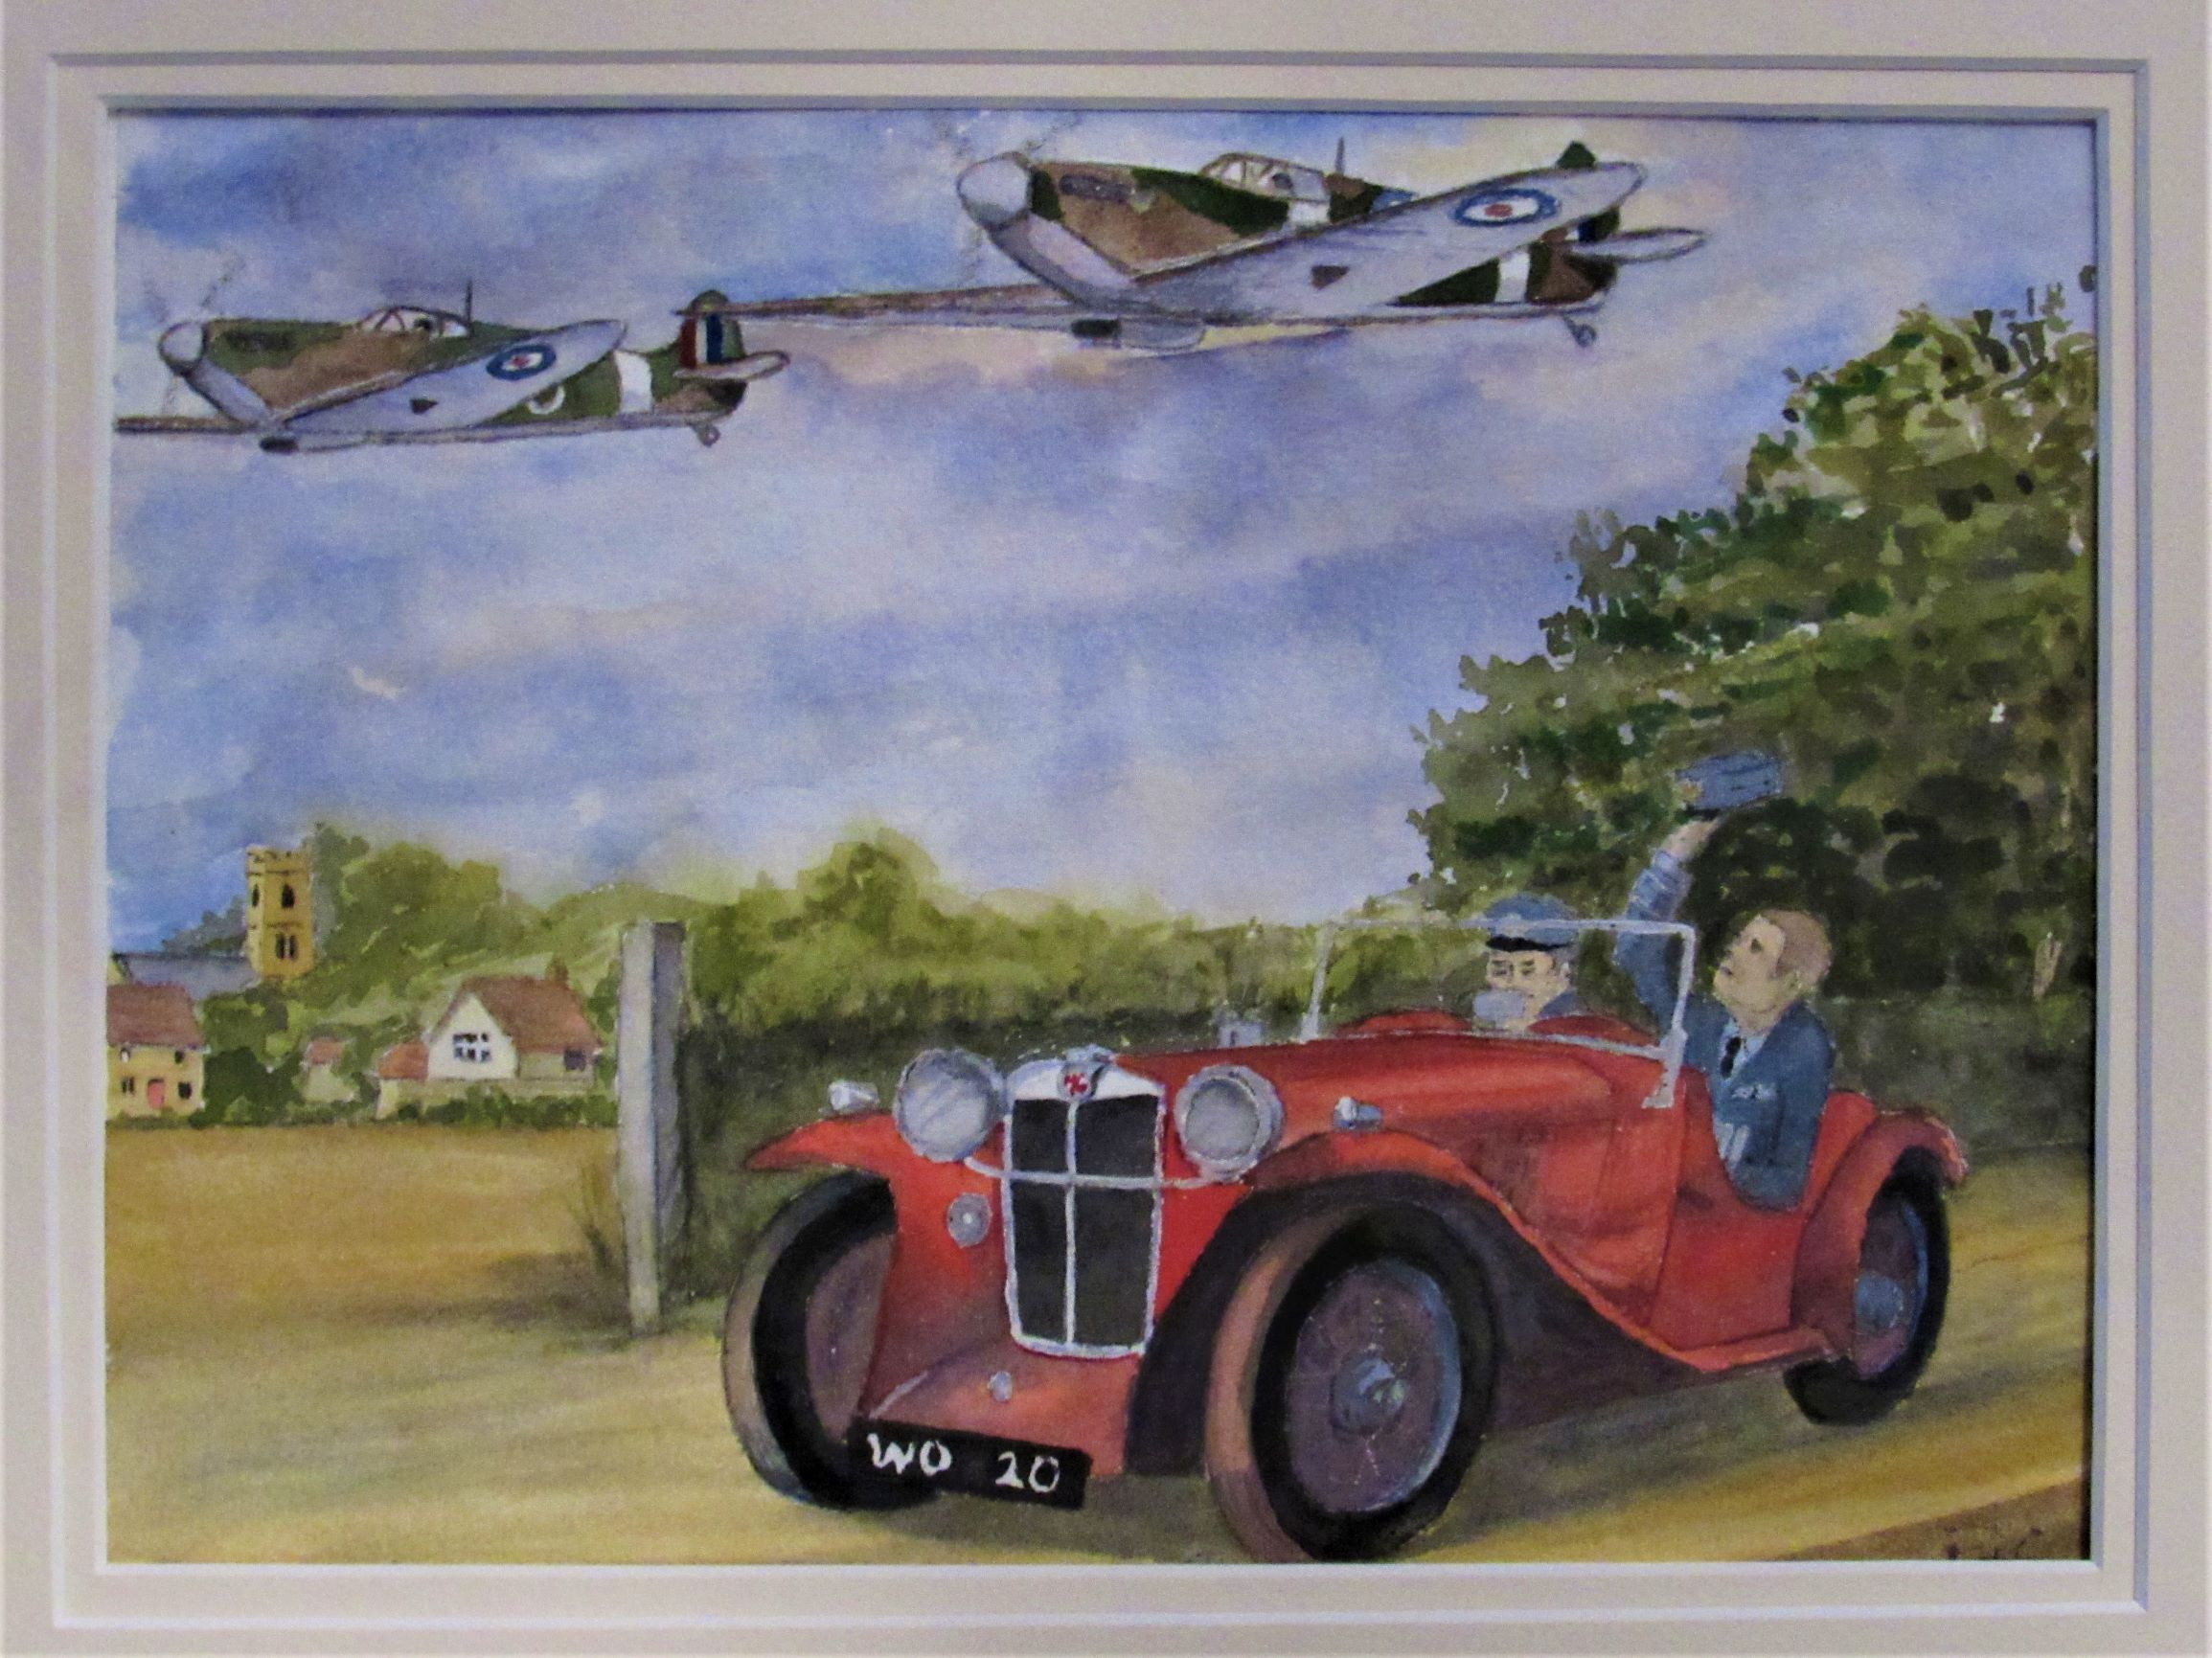 Watercolour Painting of Two Spitfires flying over a red MG/